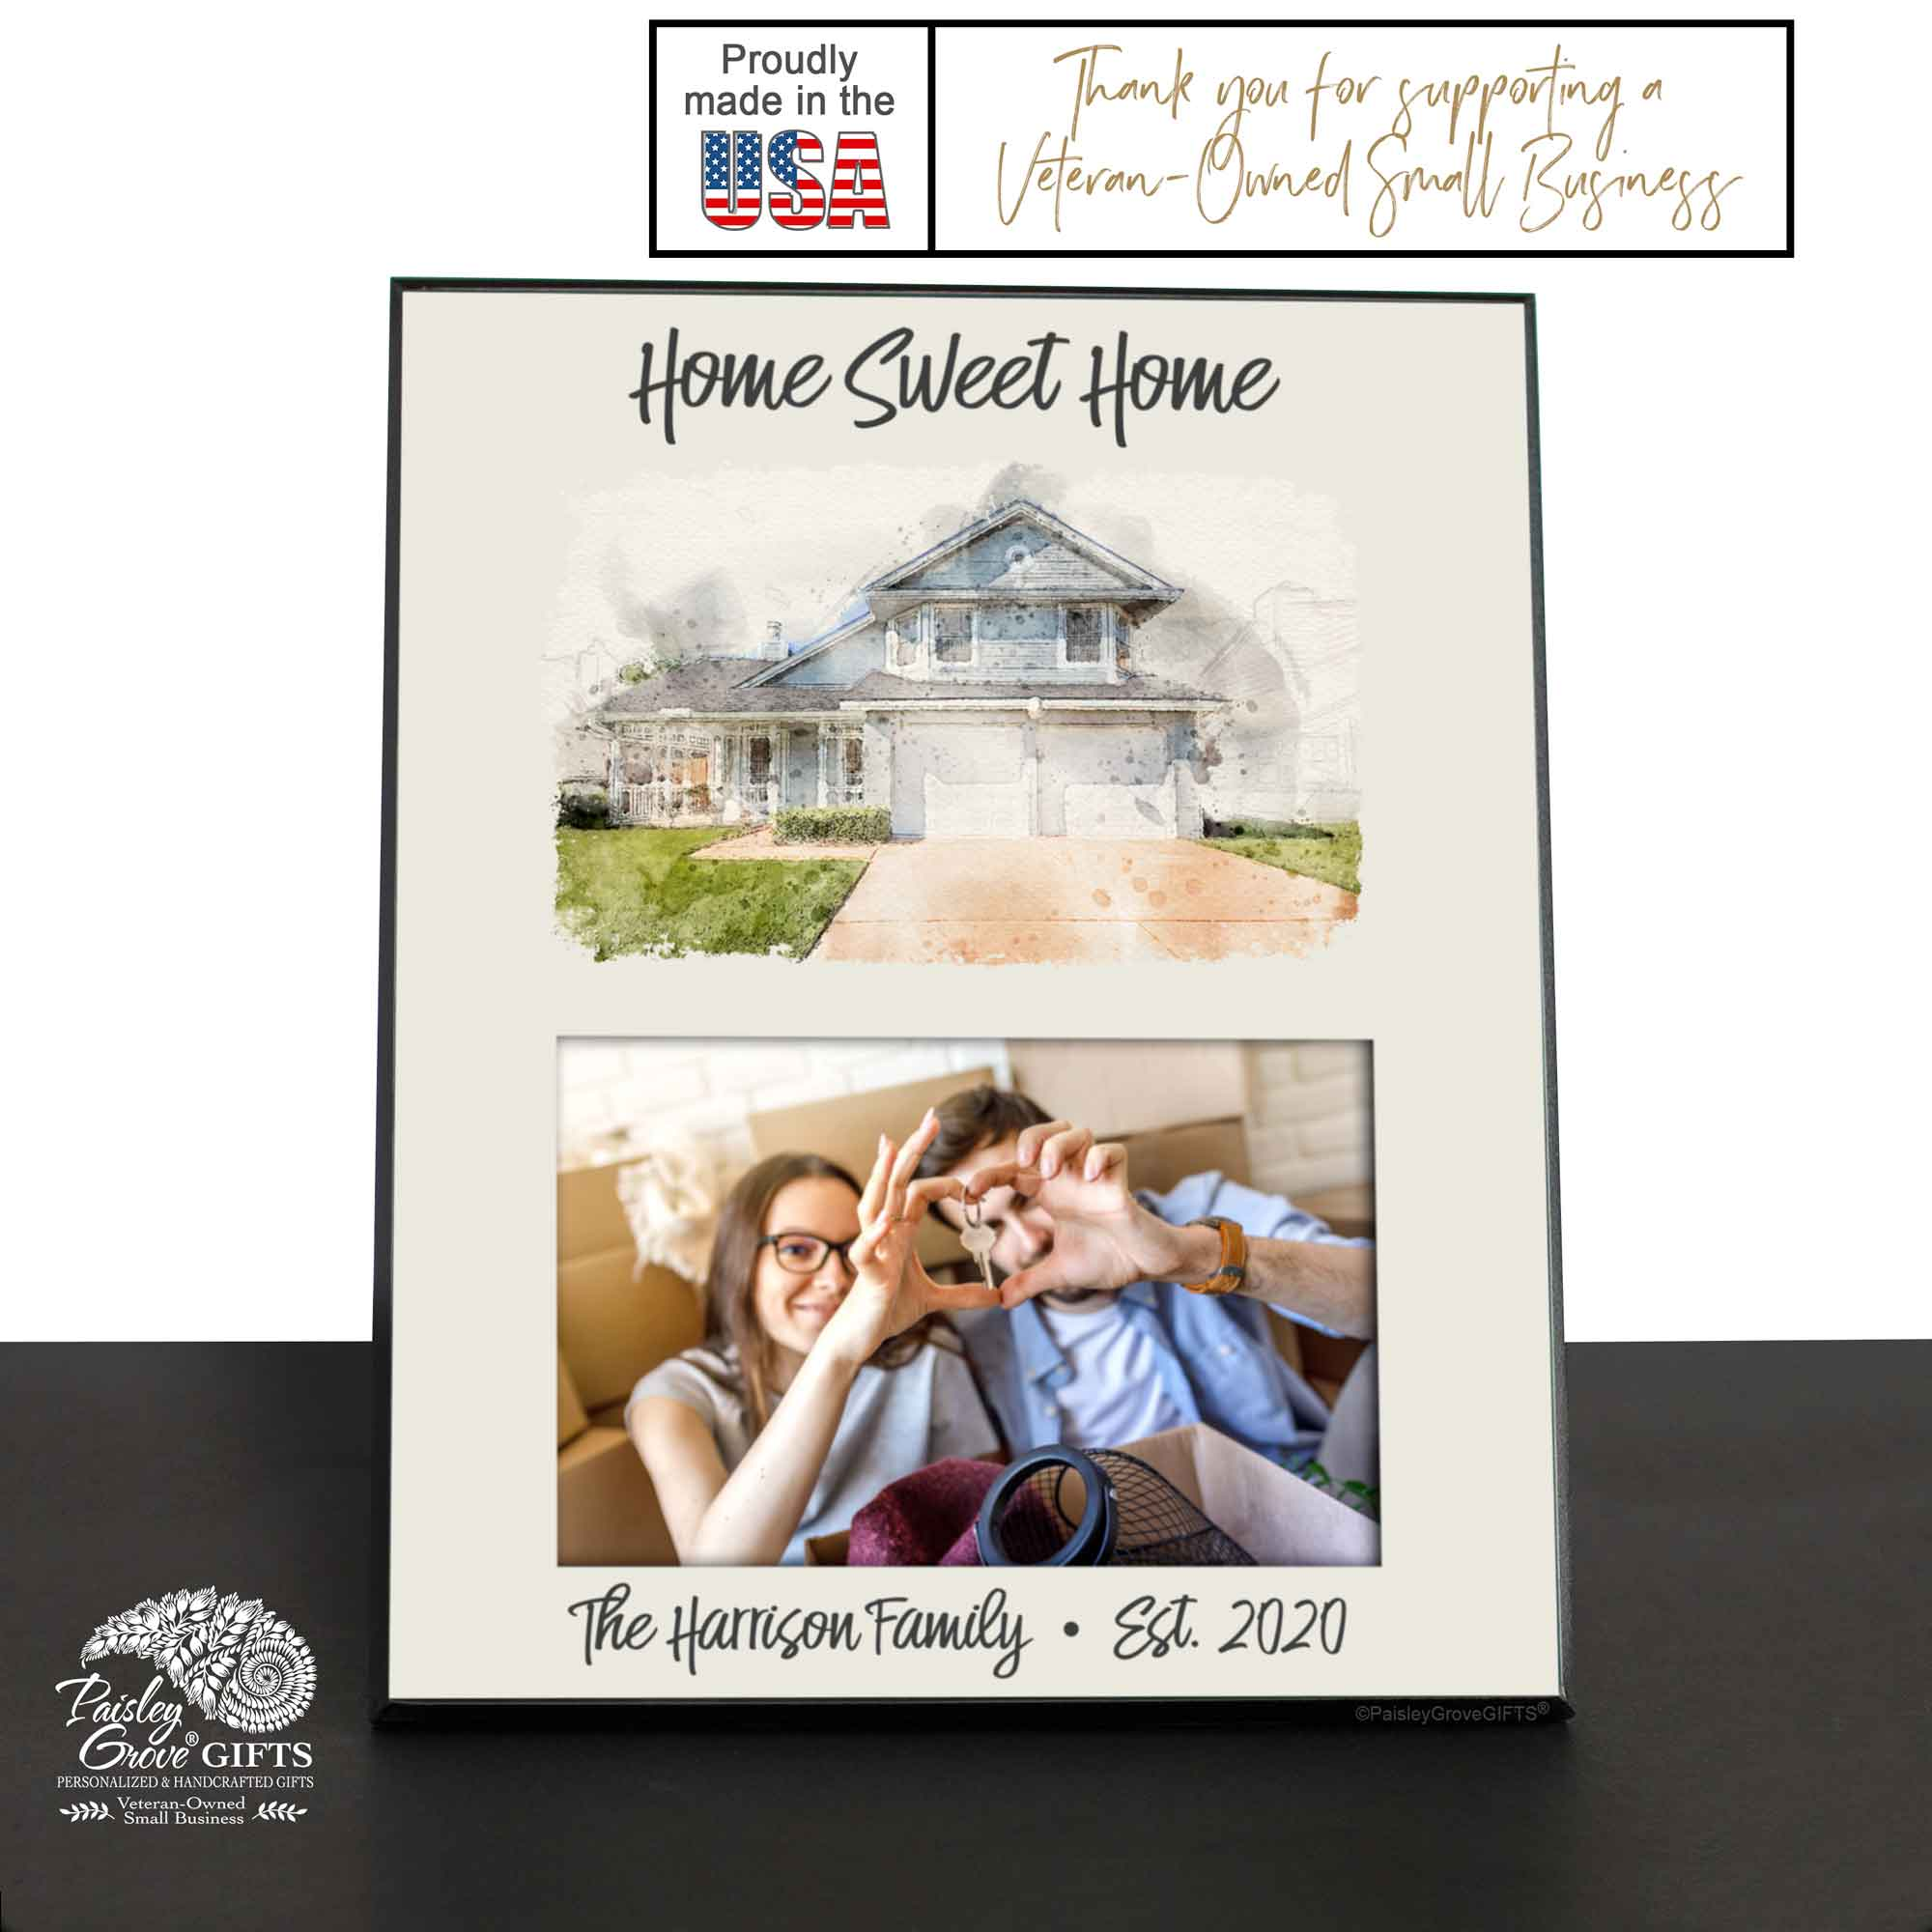 CopyrightPaisleyGroveGIFTS S250b Personalized Home Sweet Home Watercolor House Painting on Frame, Made In USA